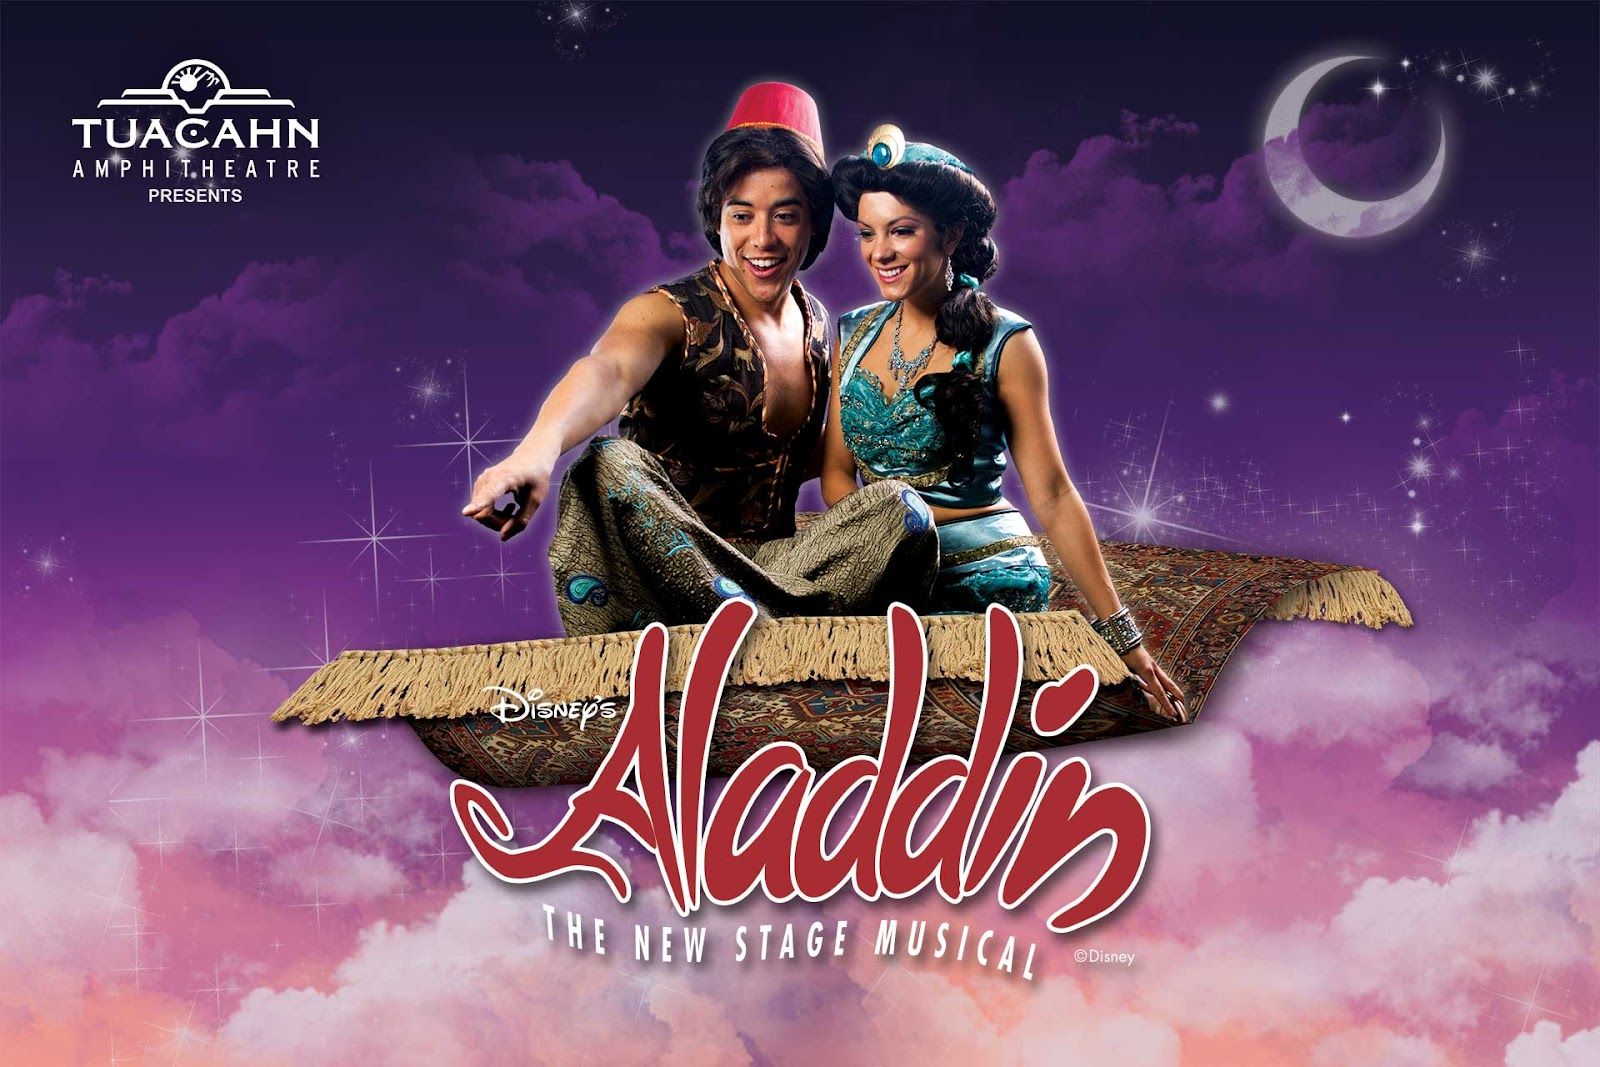 Fliegender Teppich Musical Aladdin Musical New Picture Of Tuacahn 39s Aladdin And Jasmine